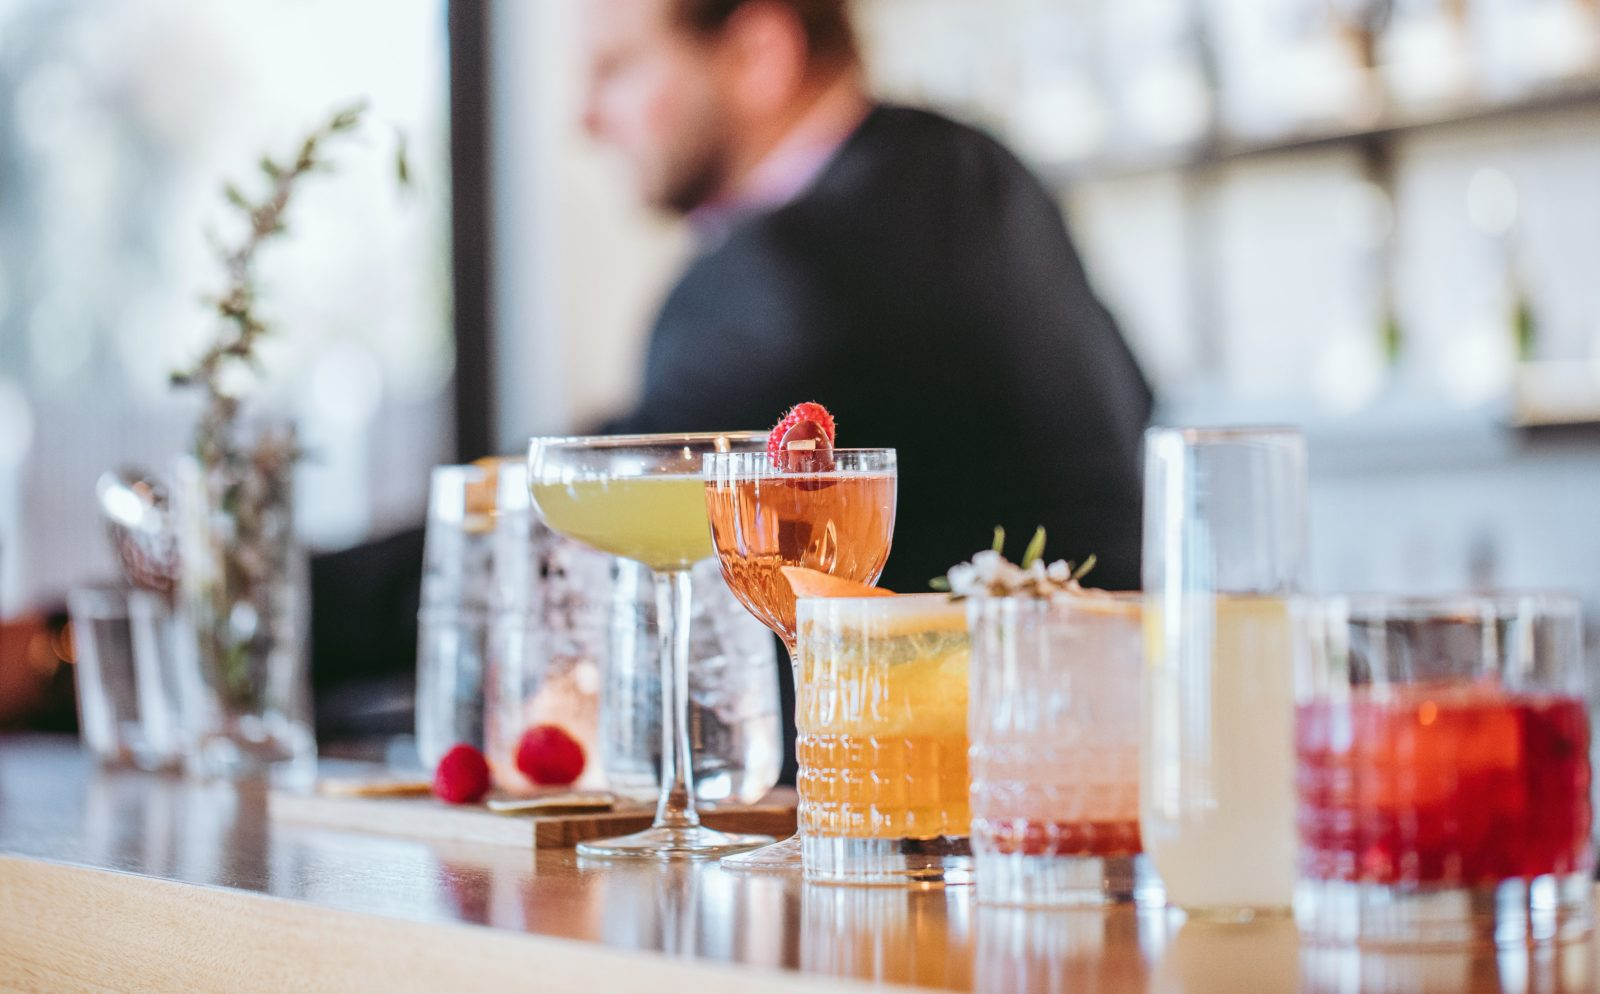 Cocktails lined up at the bar